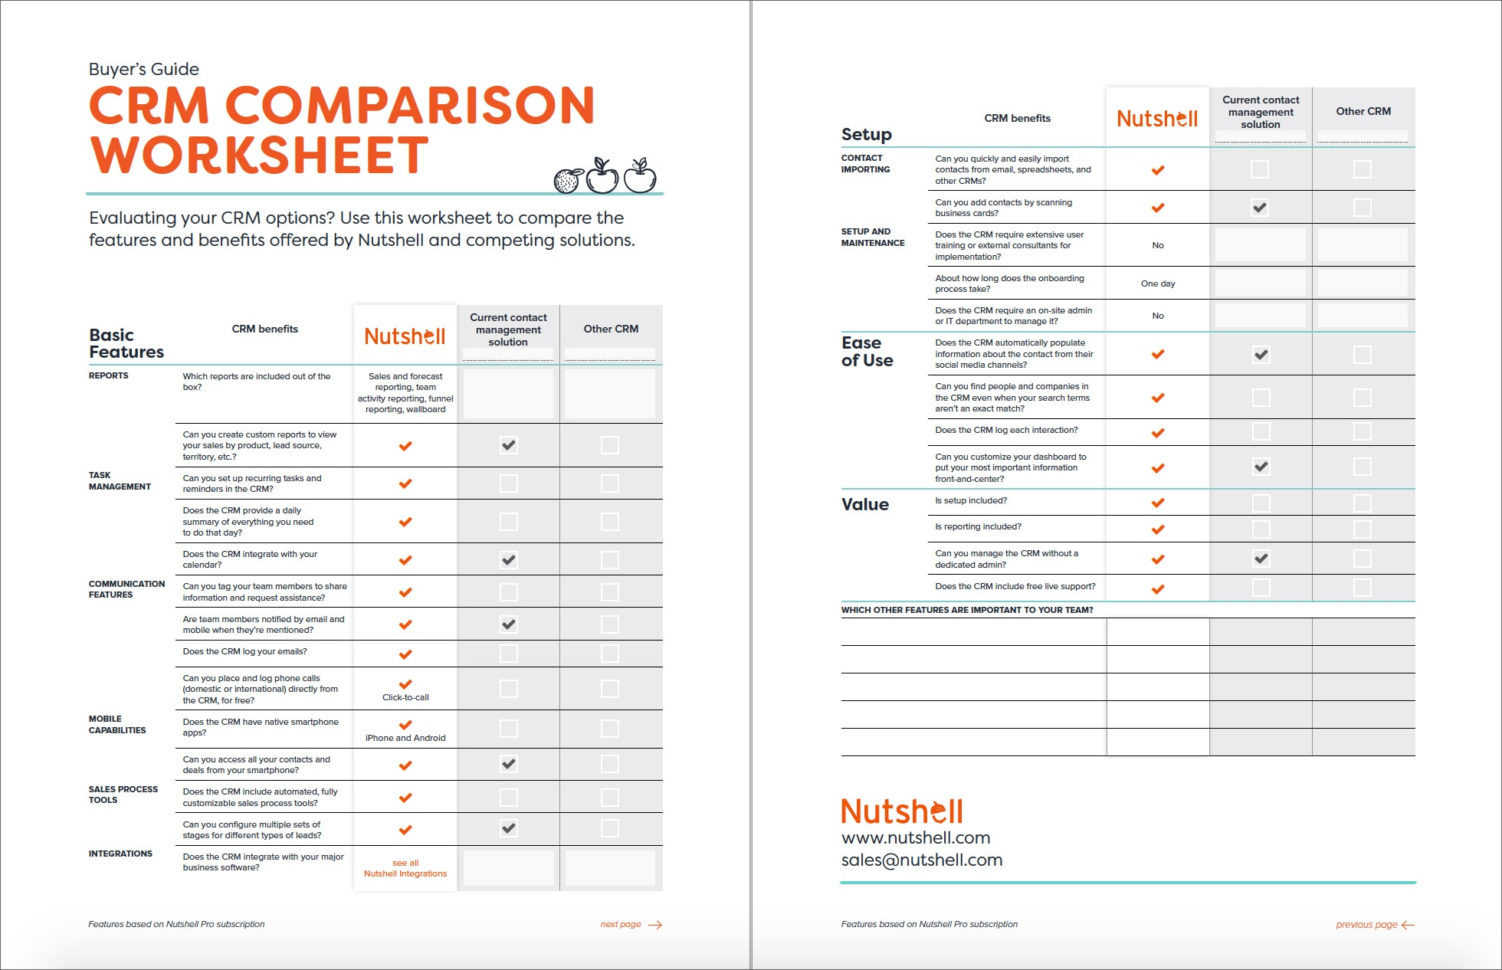 33 Comparison Shopping For A Credit Card Worksheet Answers